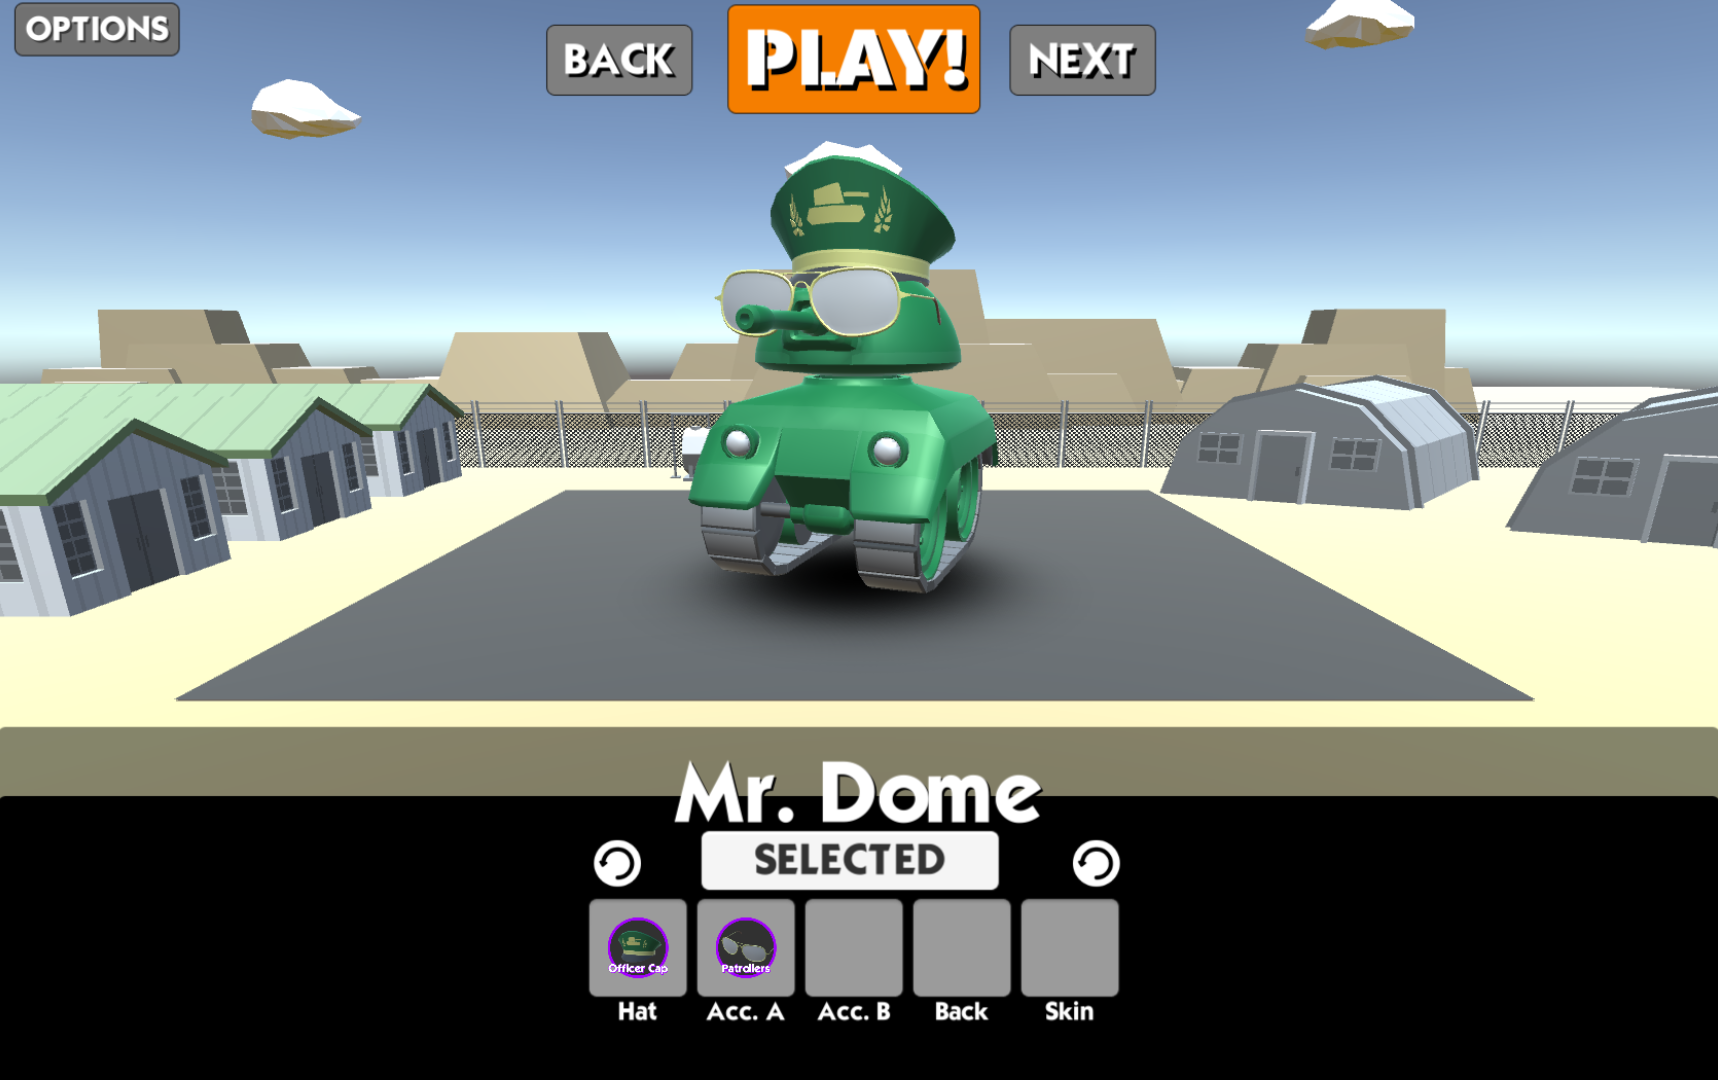 Mr. Dome, Customized